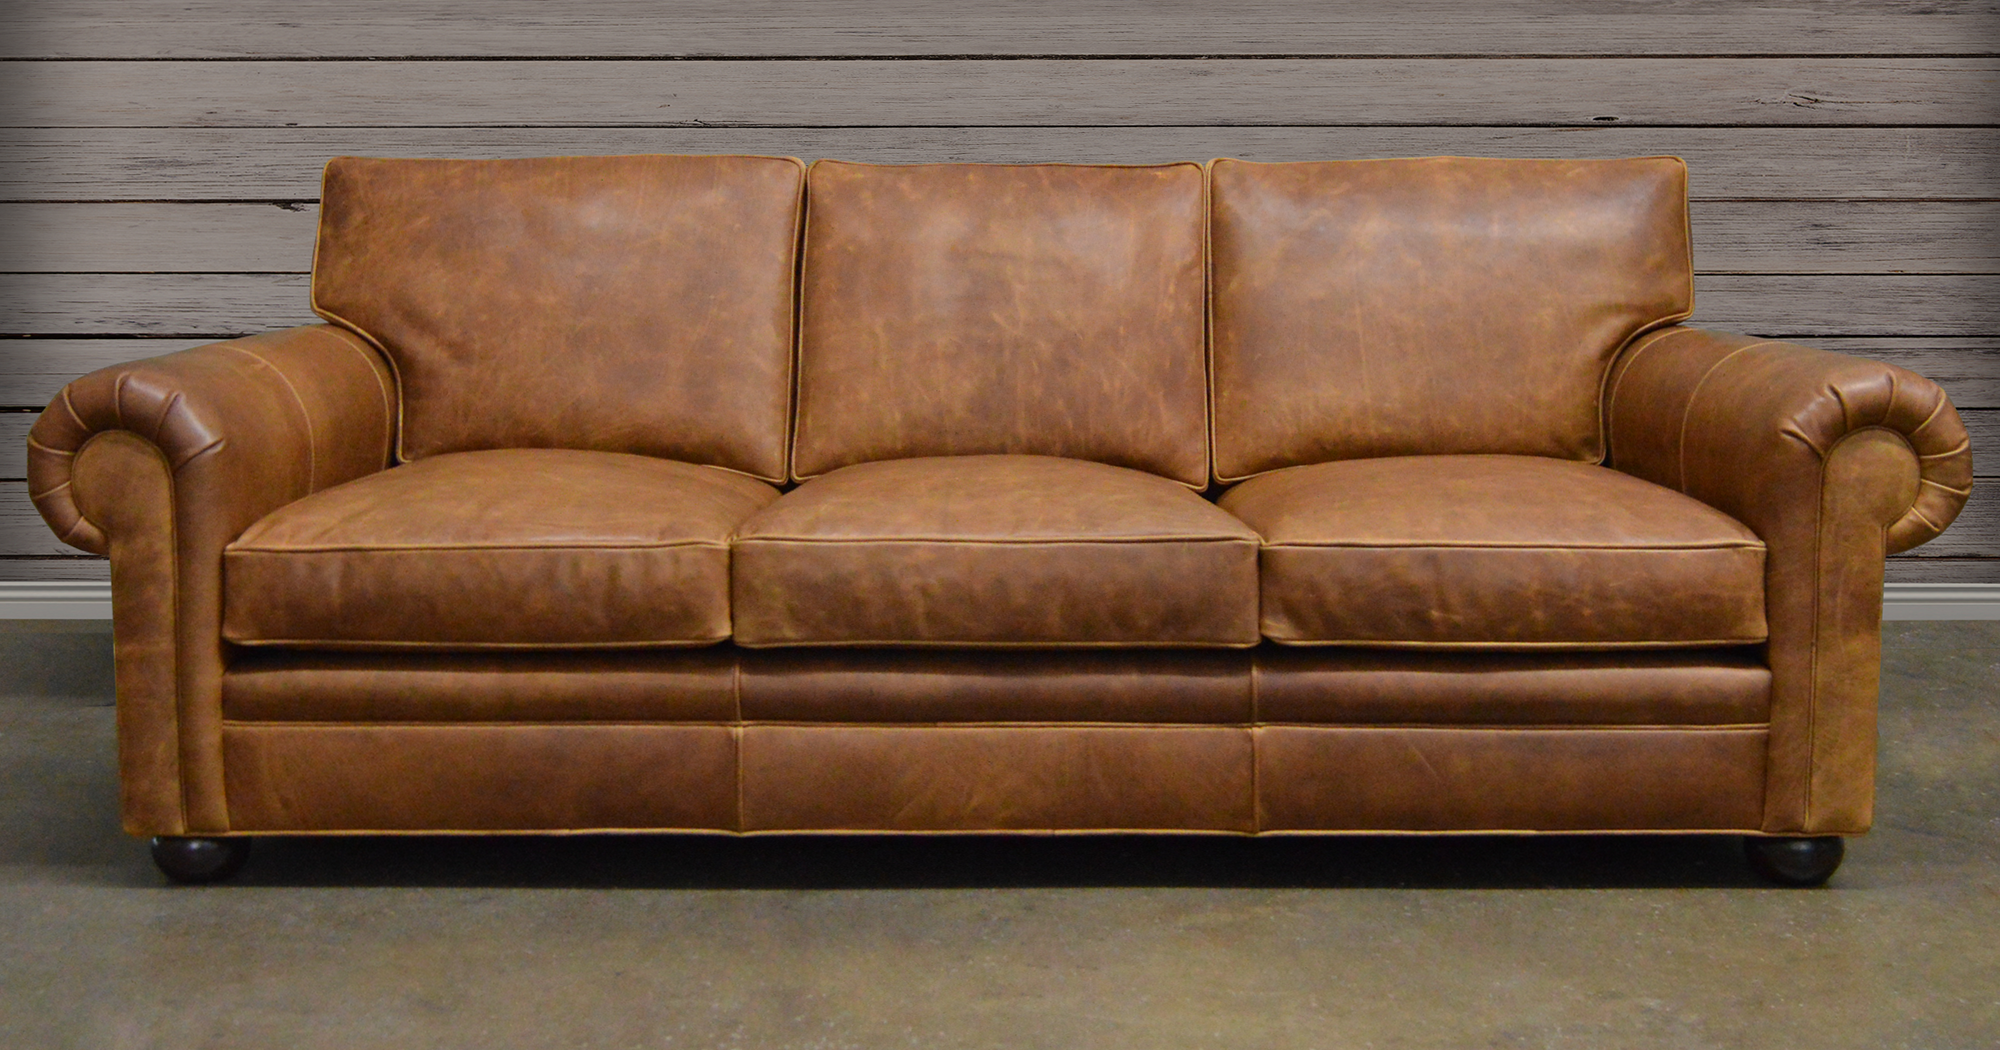 Leather Furniture Ruling Vintage Brown Shade For Superb Homes